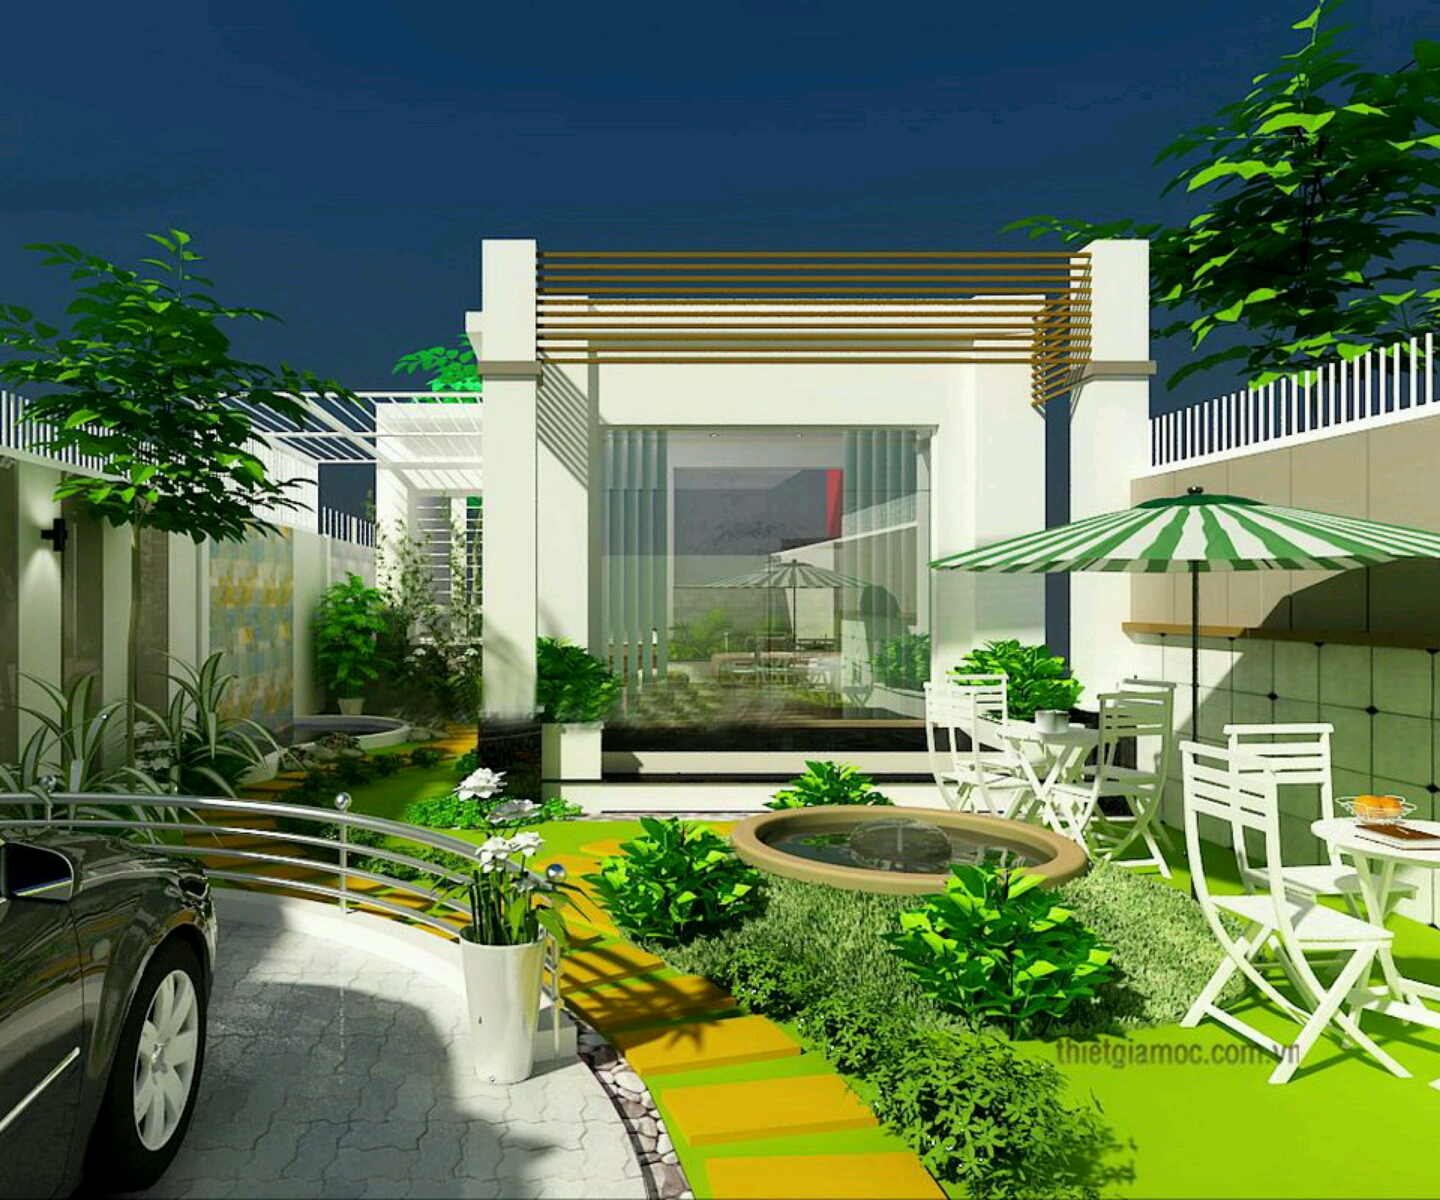 New home designs latest modern homes beautiful garden for Home garden design in pakistan